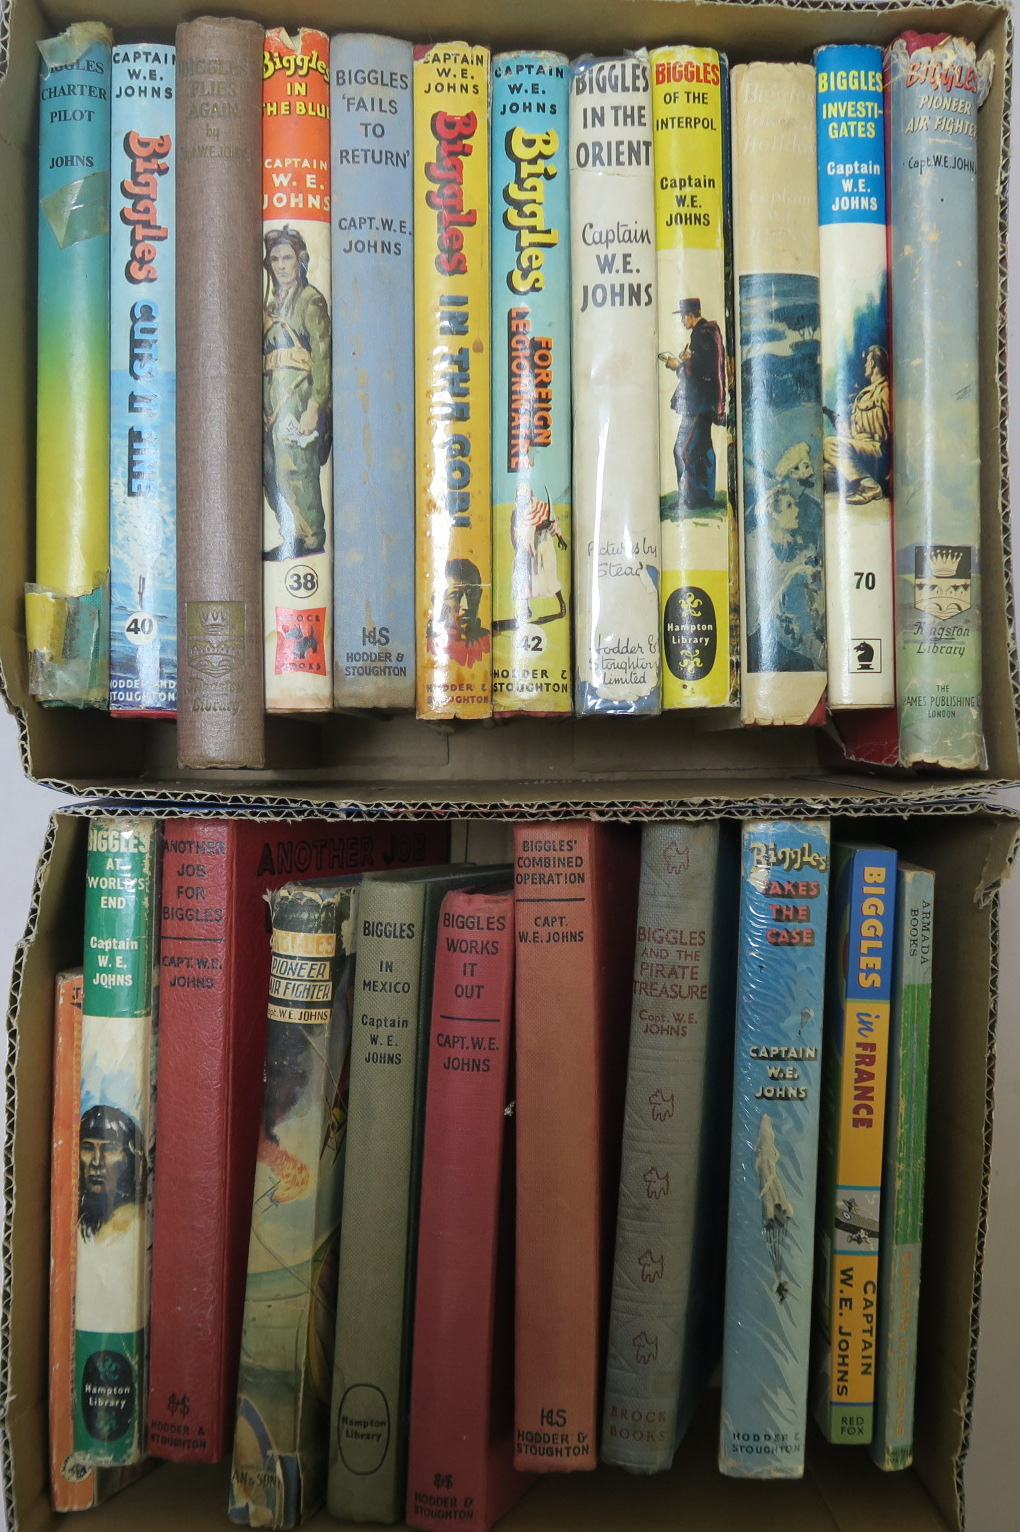 Lot 23 - Biggles and other books by Cpt. W. E. Johns hardbacks and paperbacks including first edition and